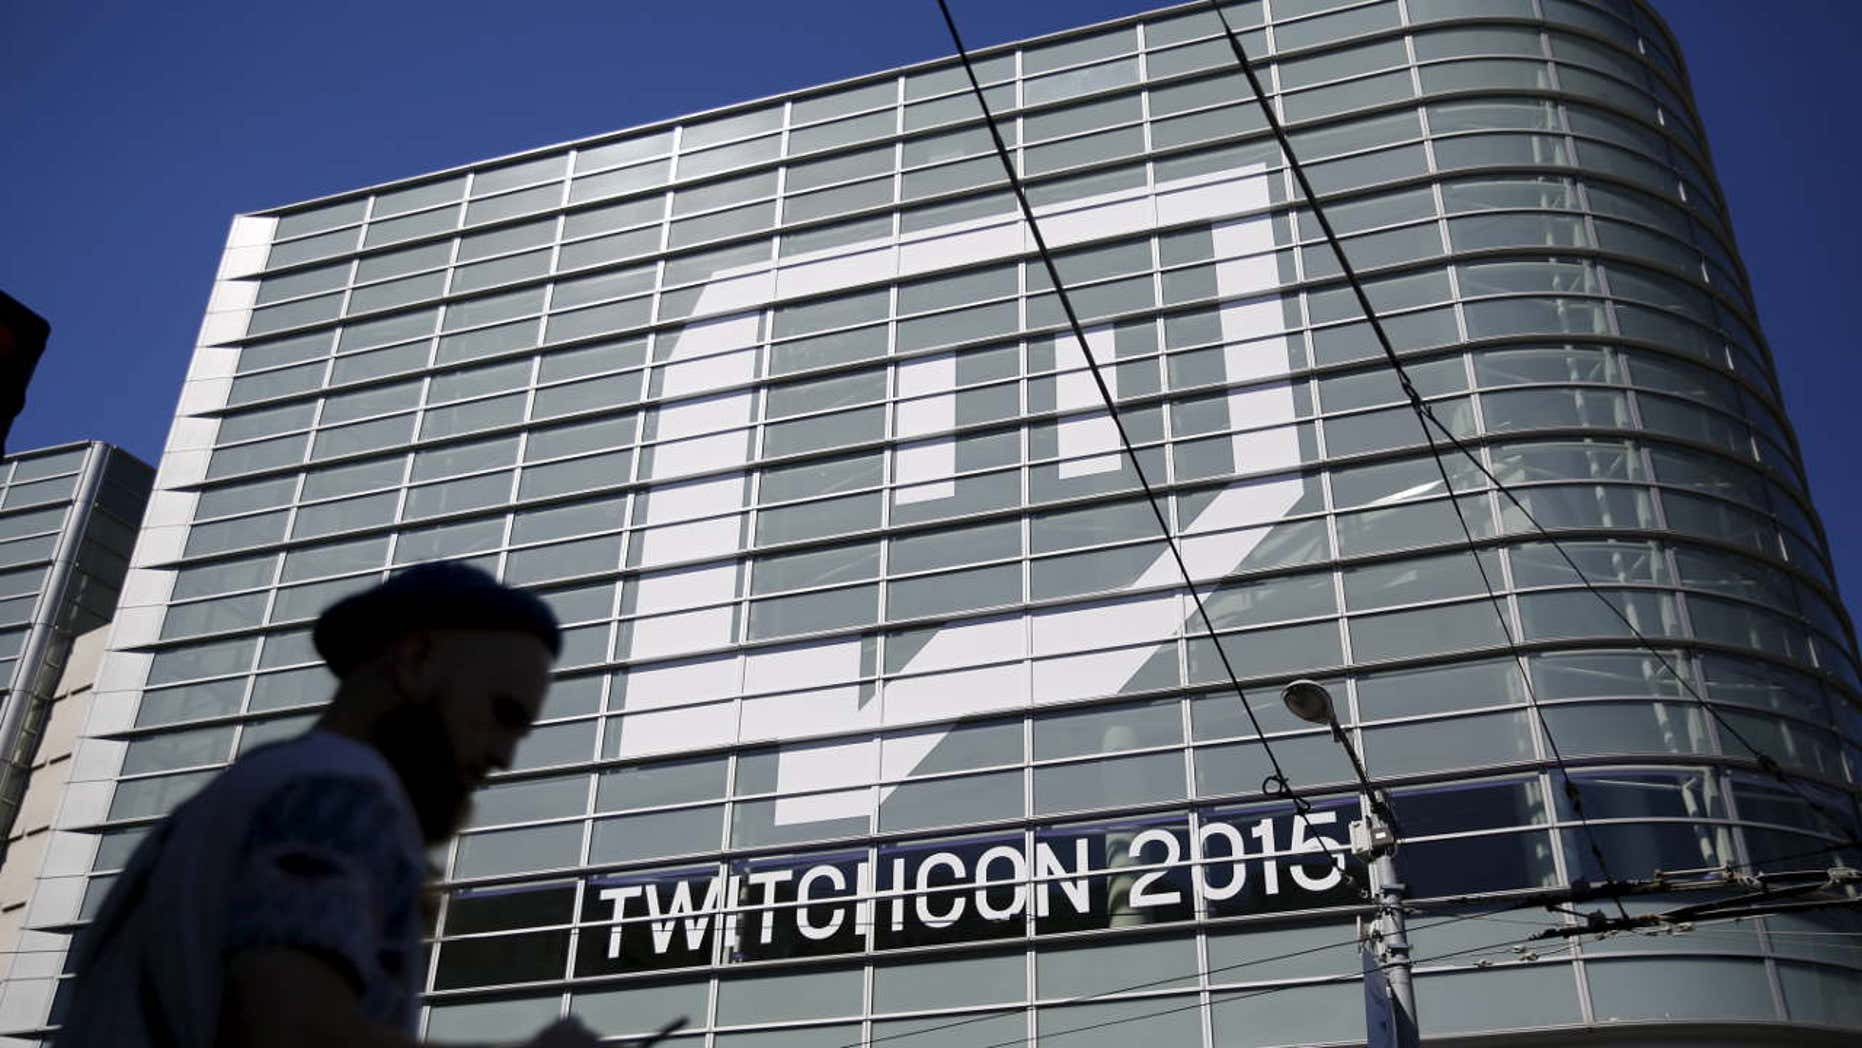 Sept. 25, 2015: A man works with a mobile device prior to entering TwitchCon 2015 in San Francisco.